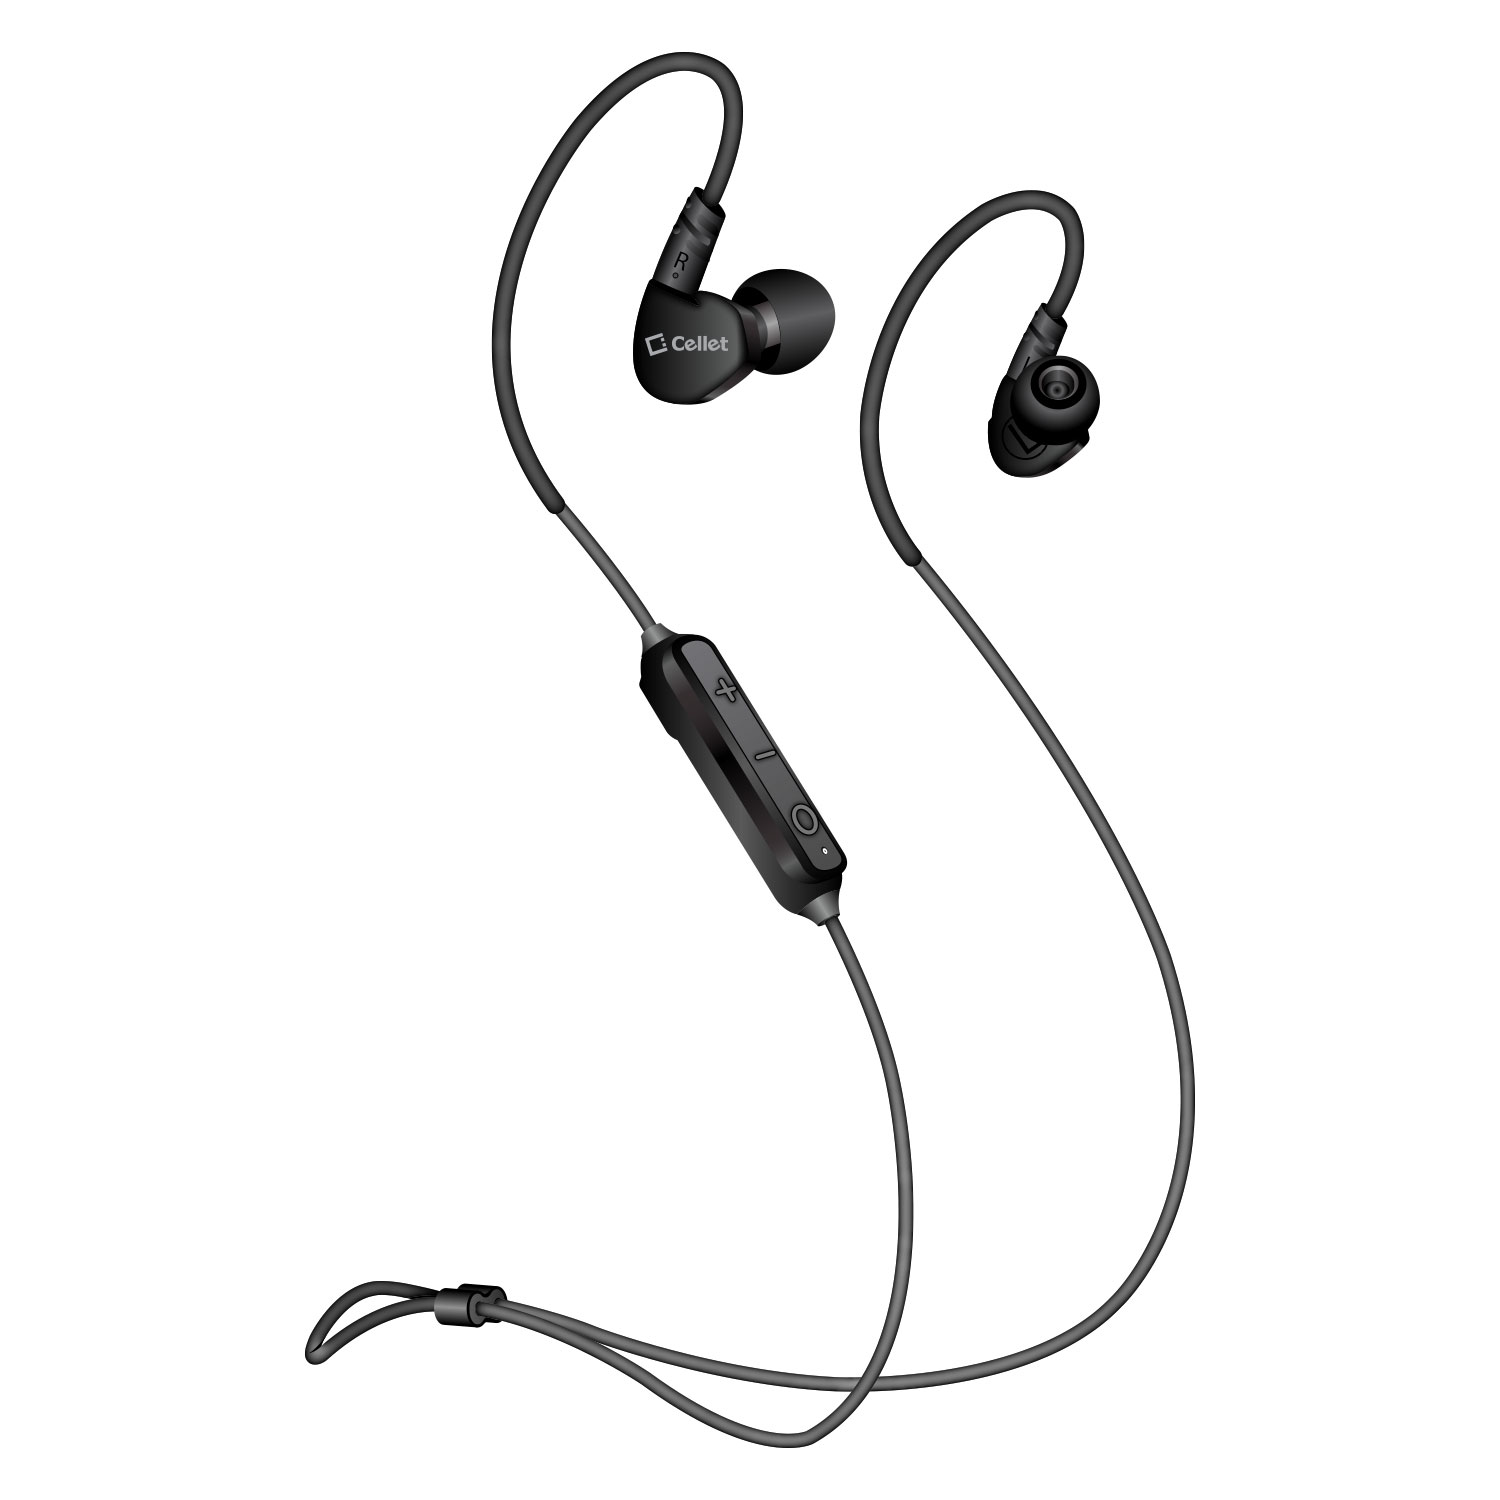 Alcatel A5 Bluetooth V5.0 Stereo Earphones Sport Headset Black